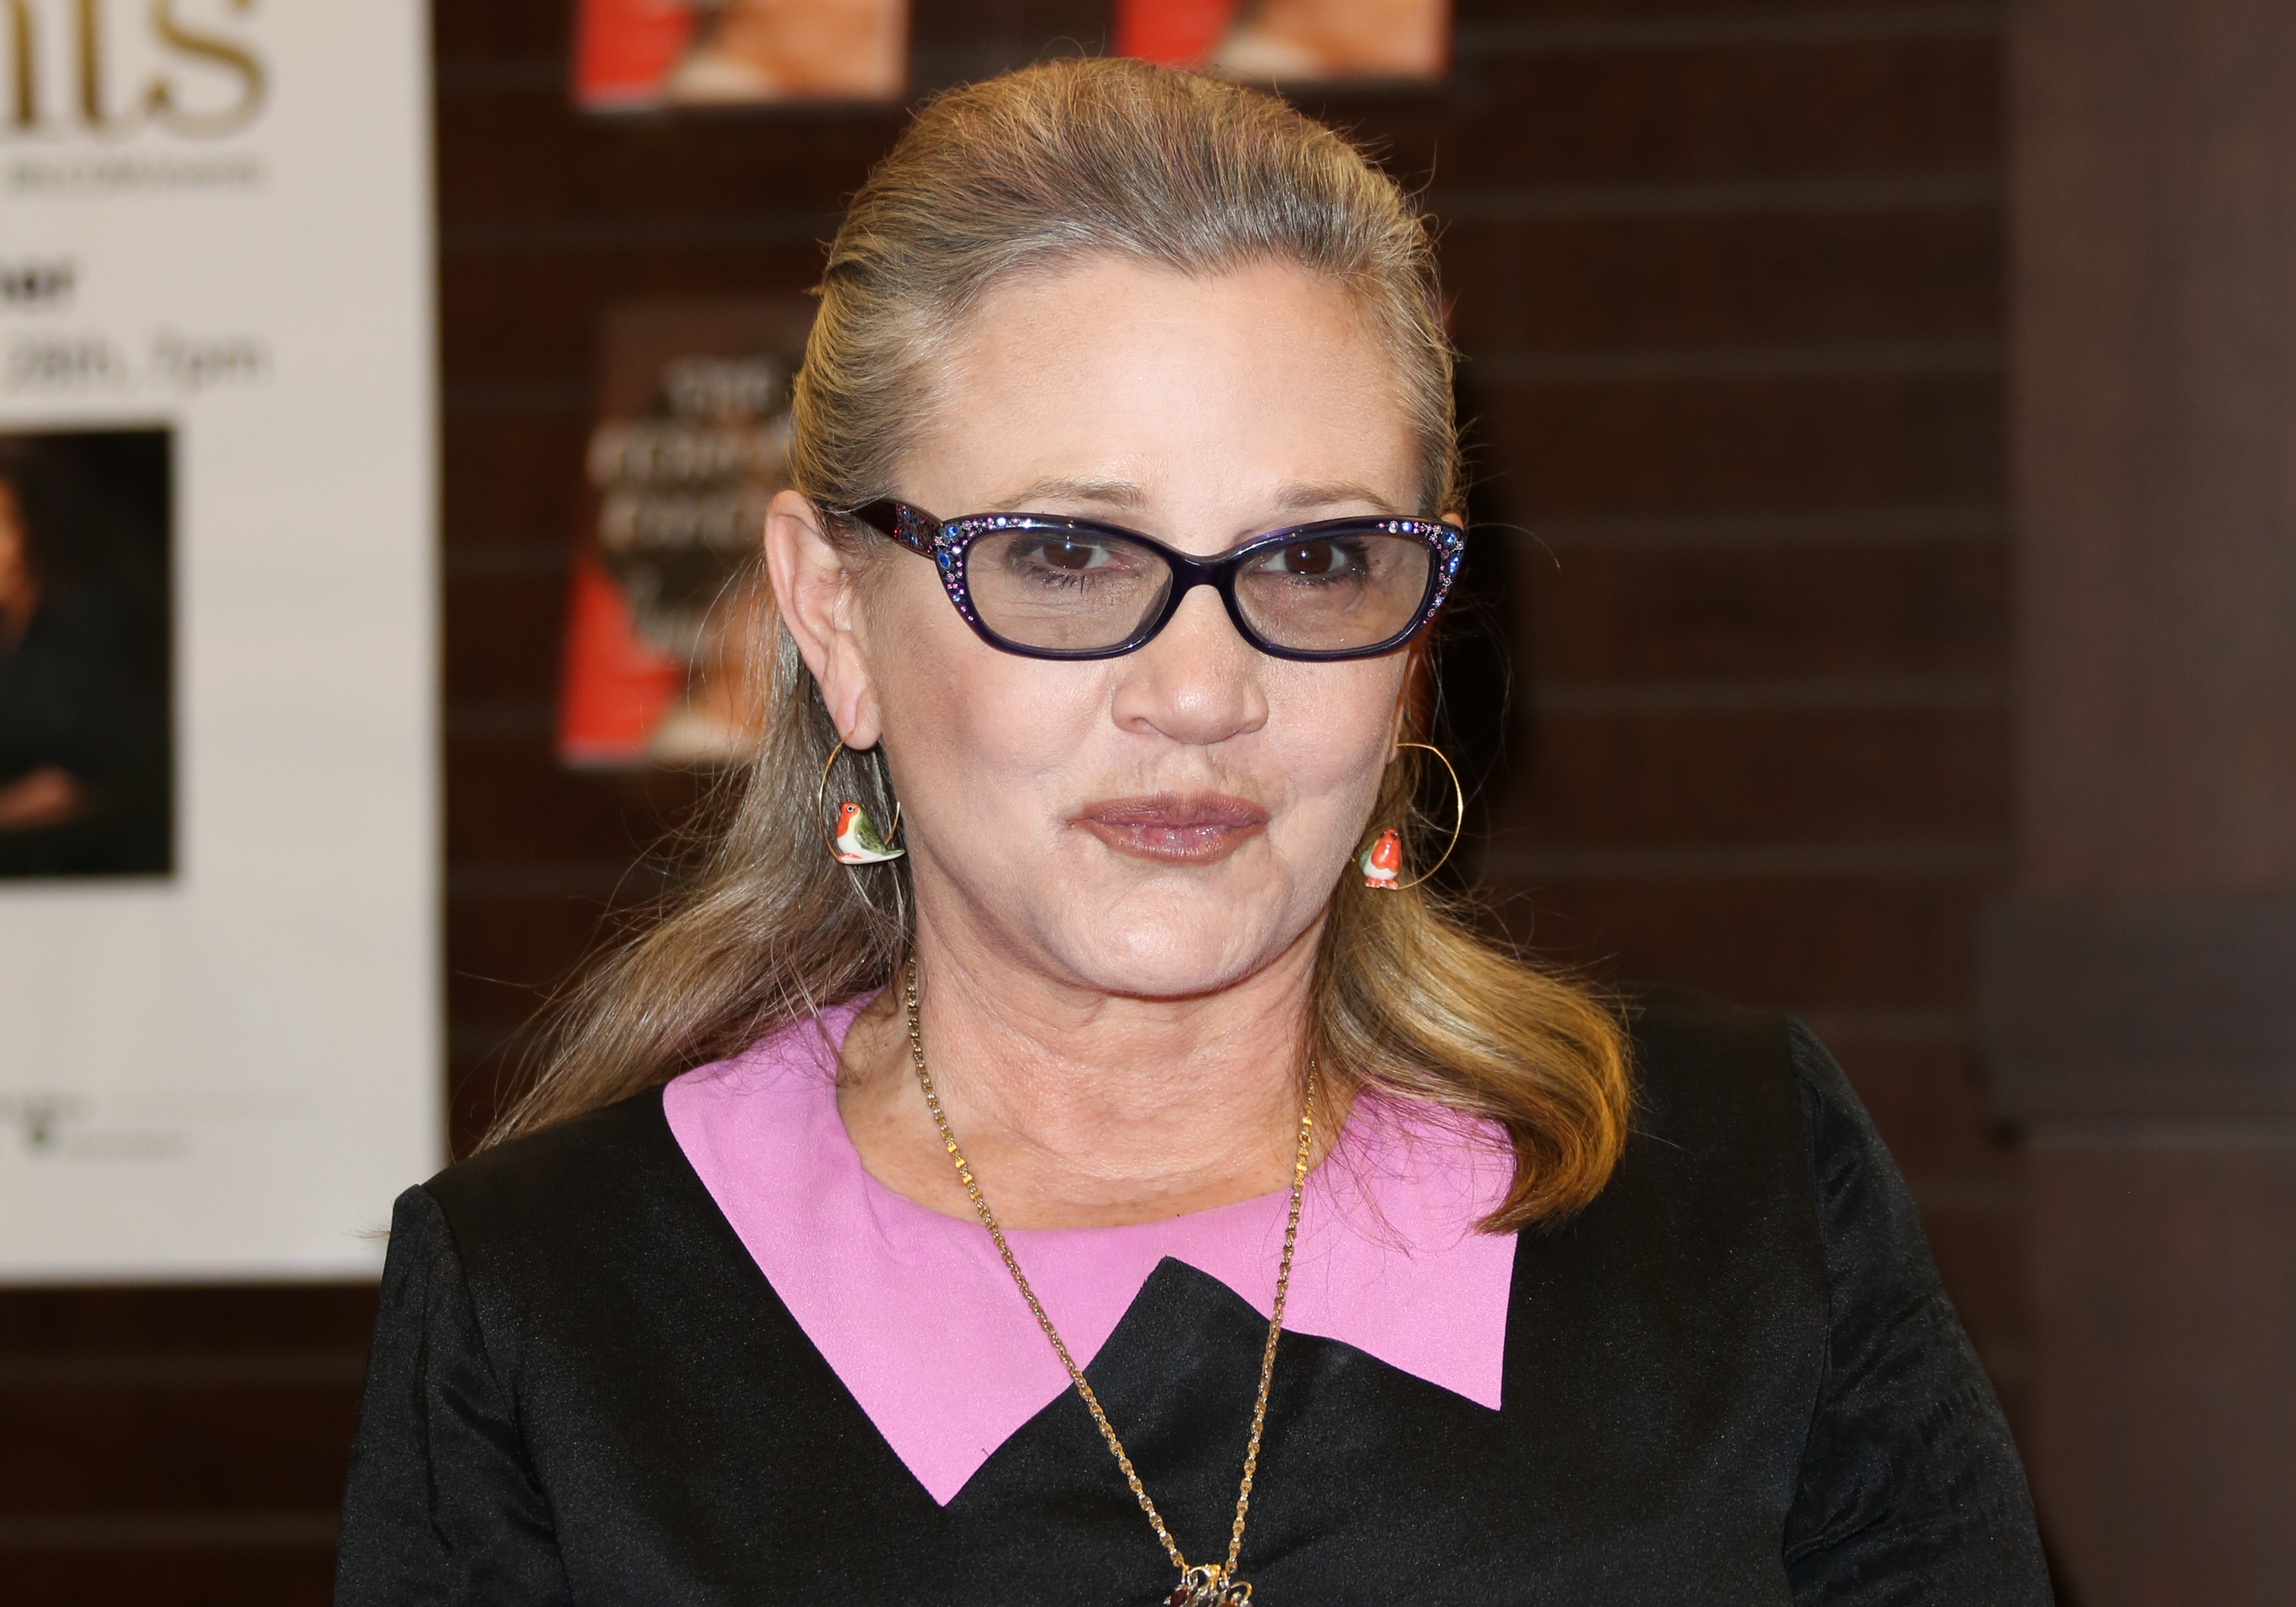 We have a new update about Carrie Fisher's condition after her heart attack, and we're all hoping for the best